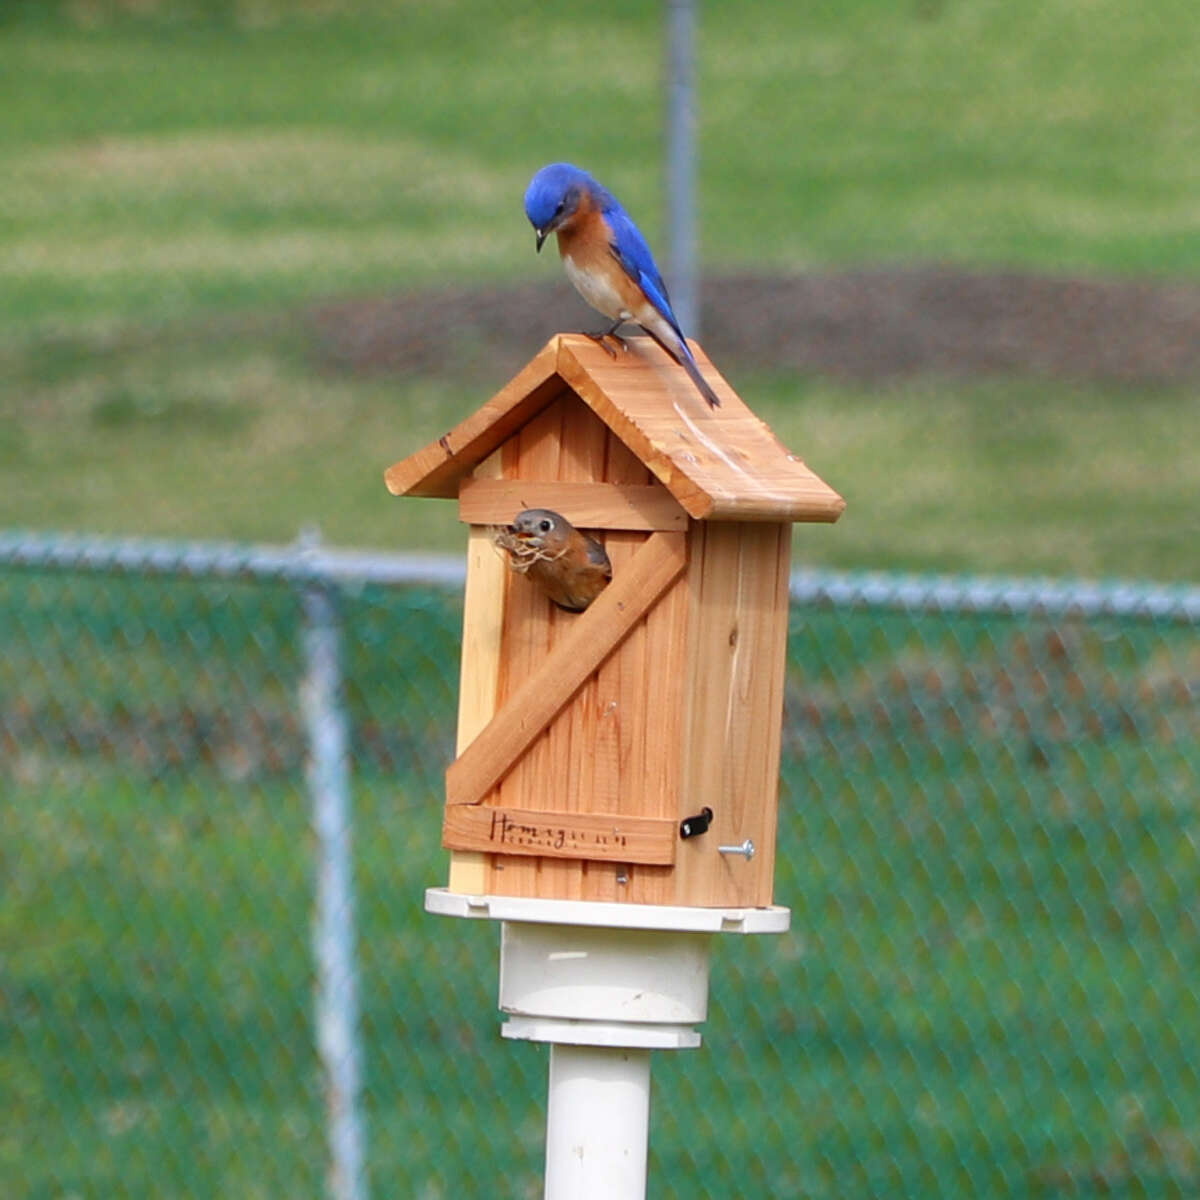 David and Krista Loffredo got acquainted with the new resident bluebirds photographed in their neighbor's yard in Latham.